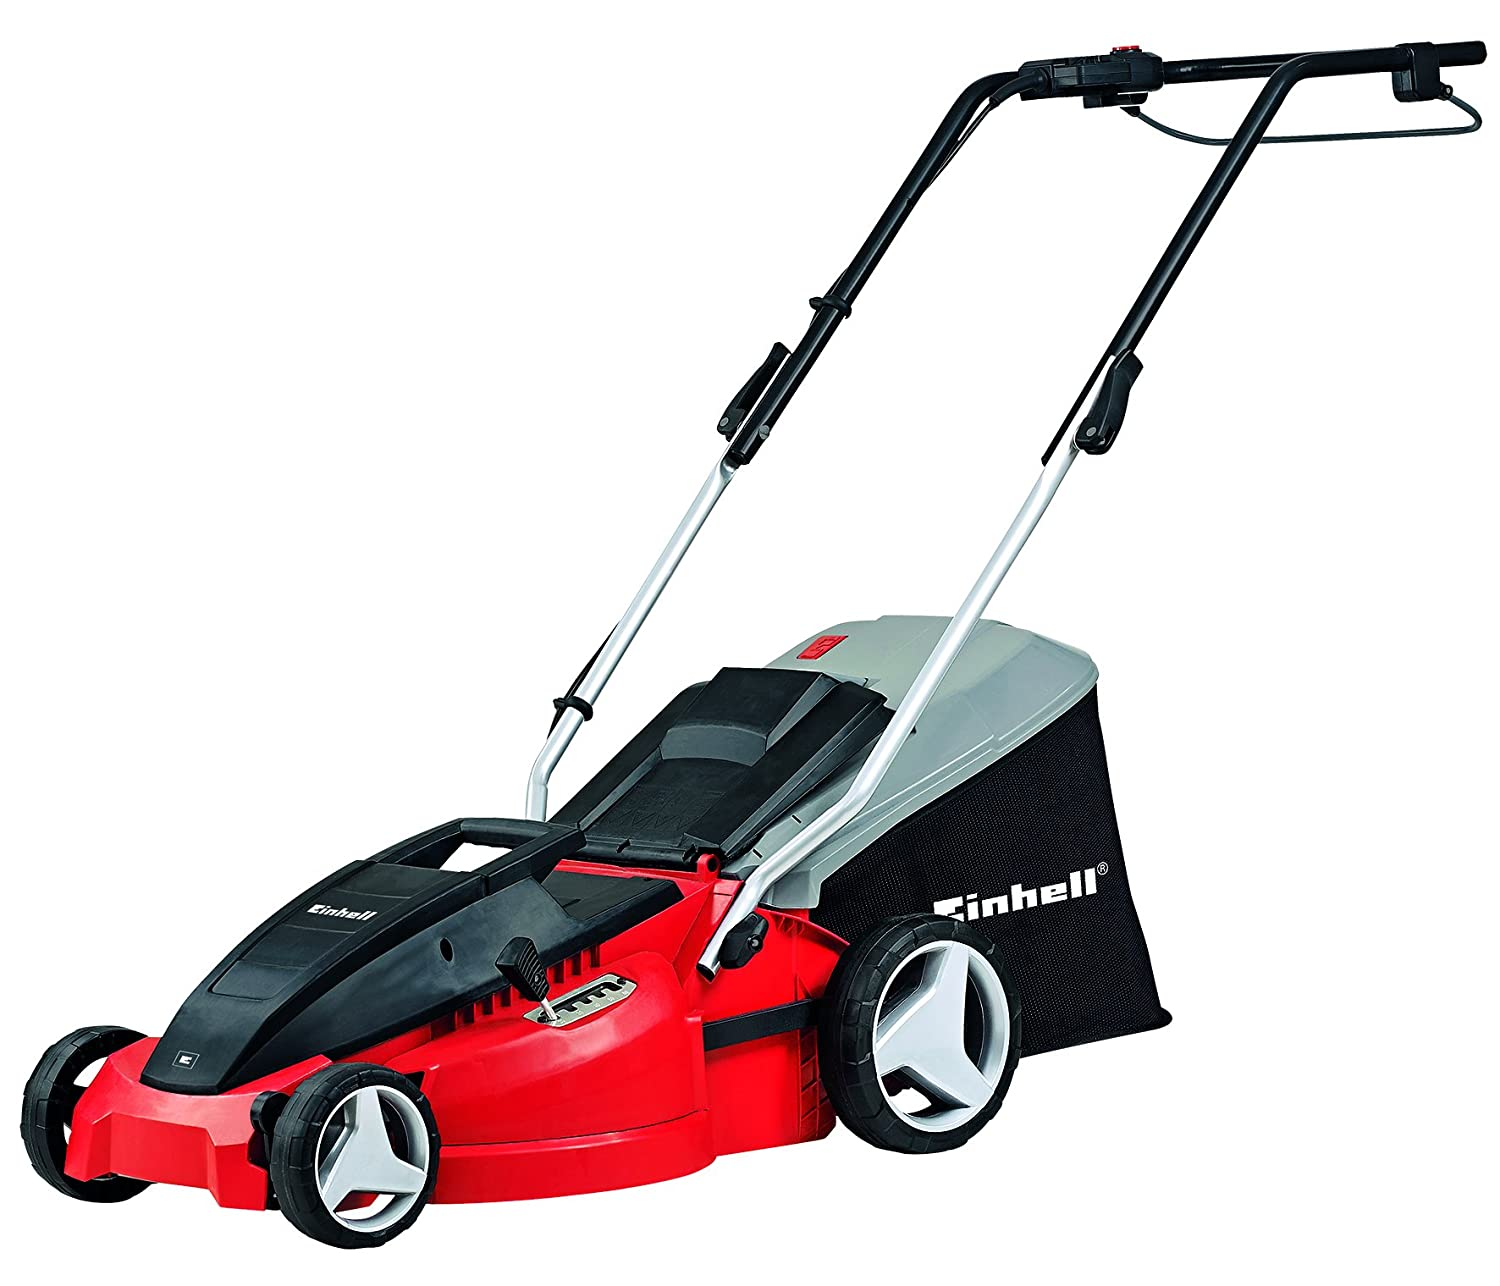 Einhell GC-EM 1536 1500 W Electric Rotary Lawnmower with 36 cm Cutting Width - Red 3400150